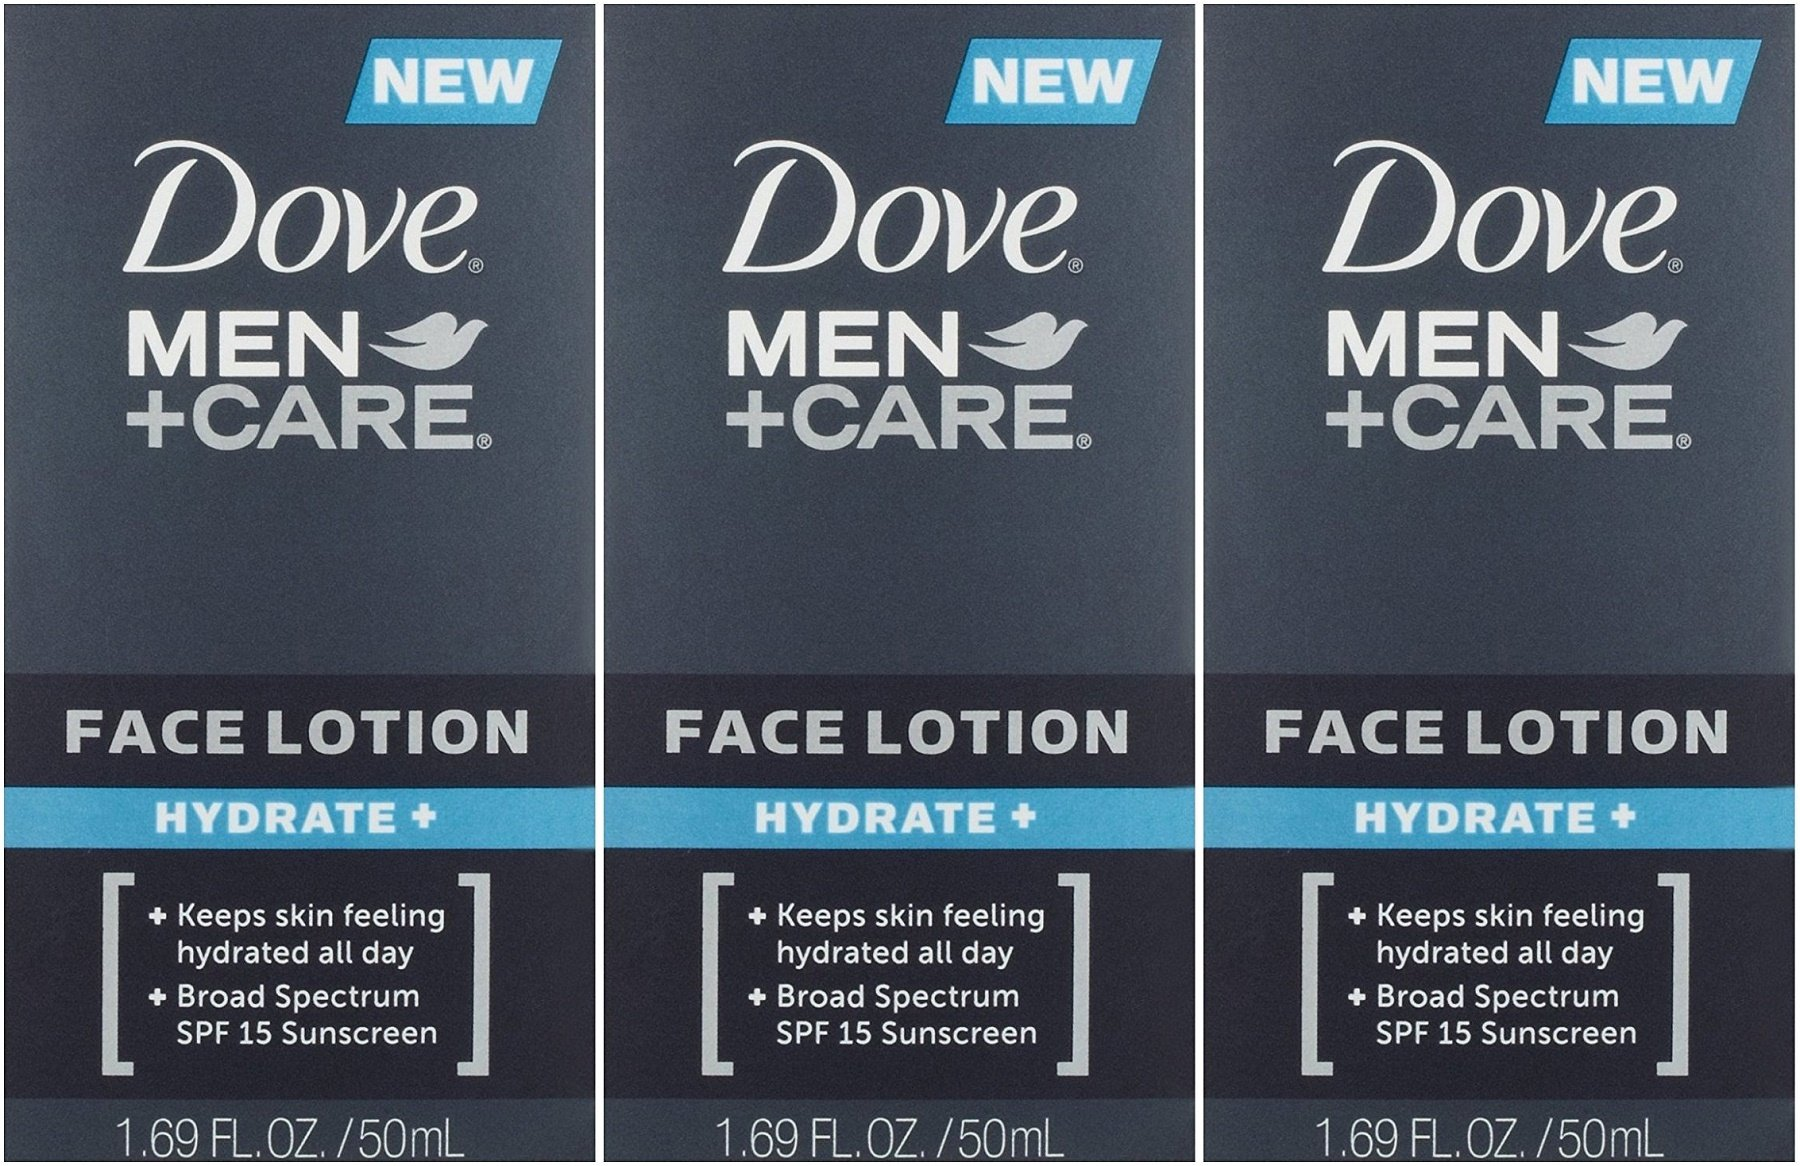 Dove Men + Care Face Lotion Hydrate + 1.69 OZ - Buy Packs and SAVE (Pack of 3) by Dove